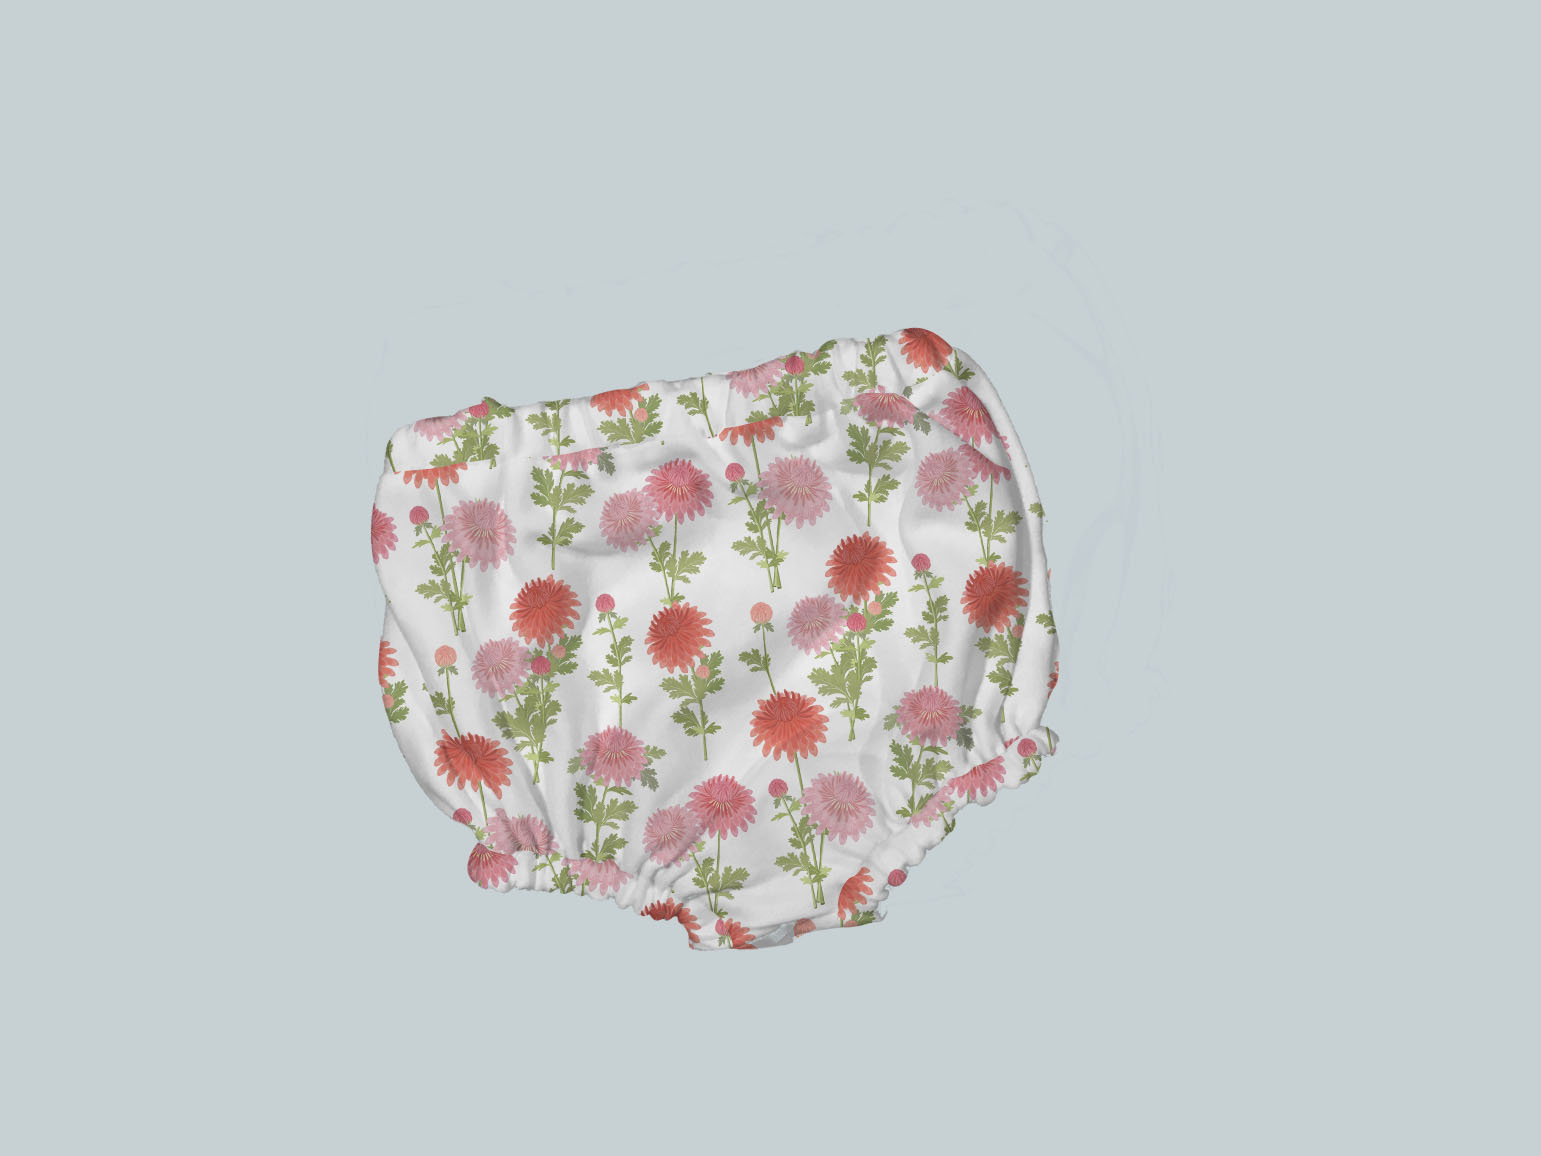 Bummies/Diaper Cover - Bright Blooms